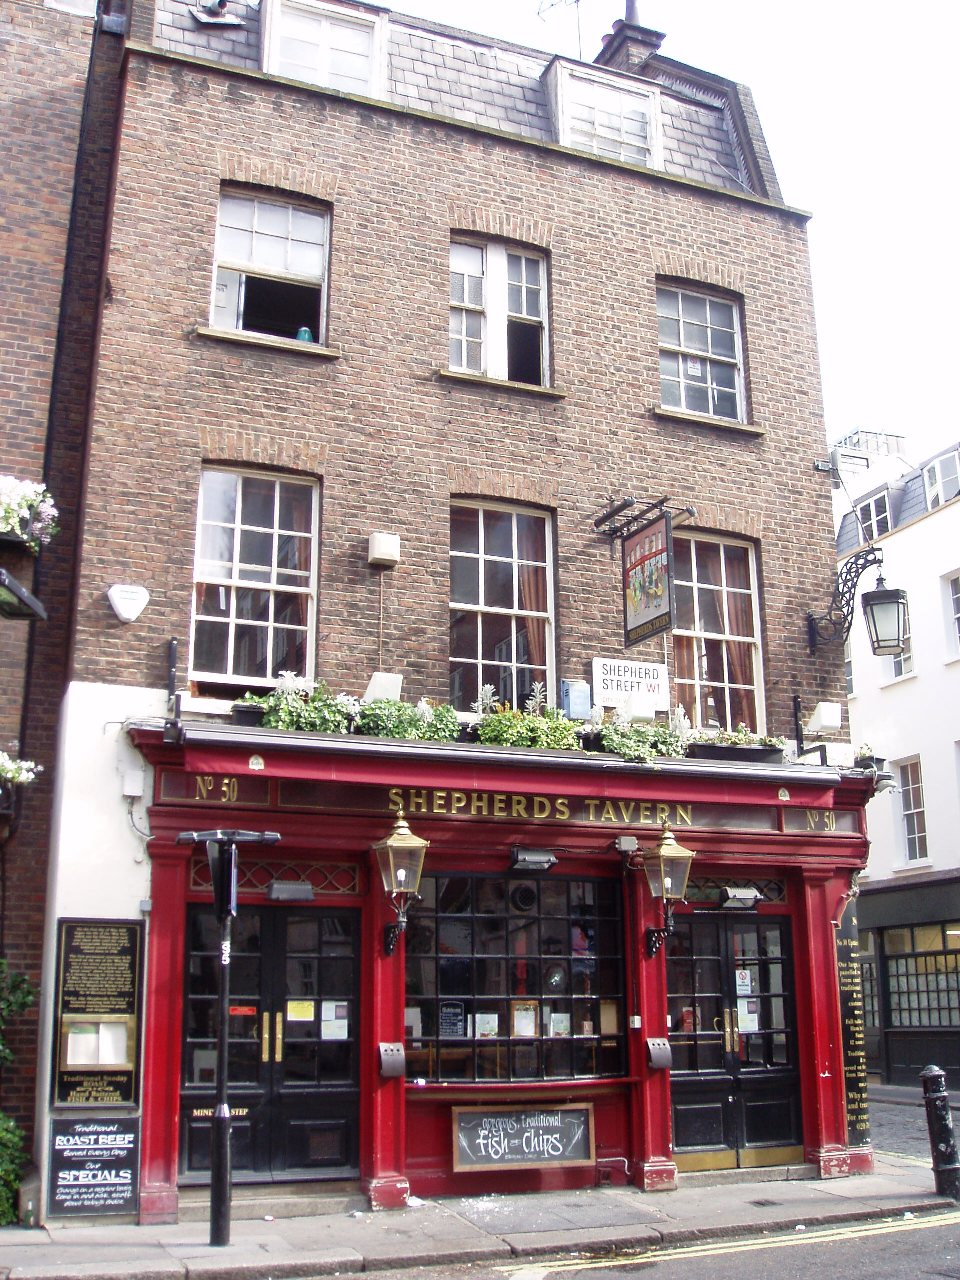 Shepherds_Tavern,_Mayfair,_W1_(2711900118).jpg